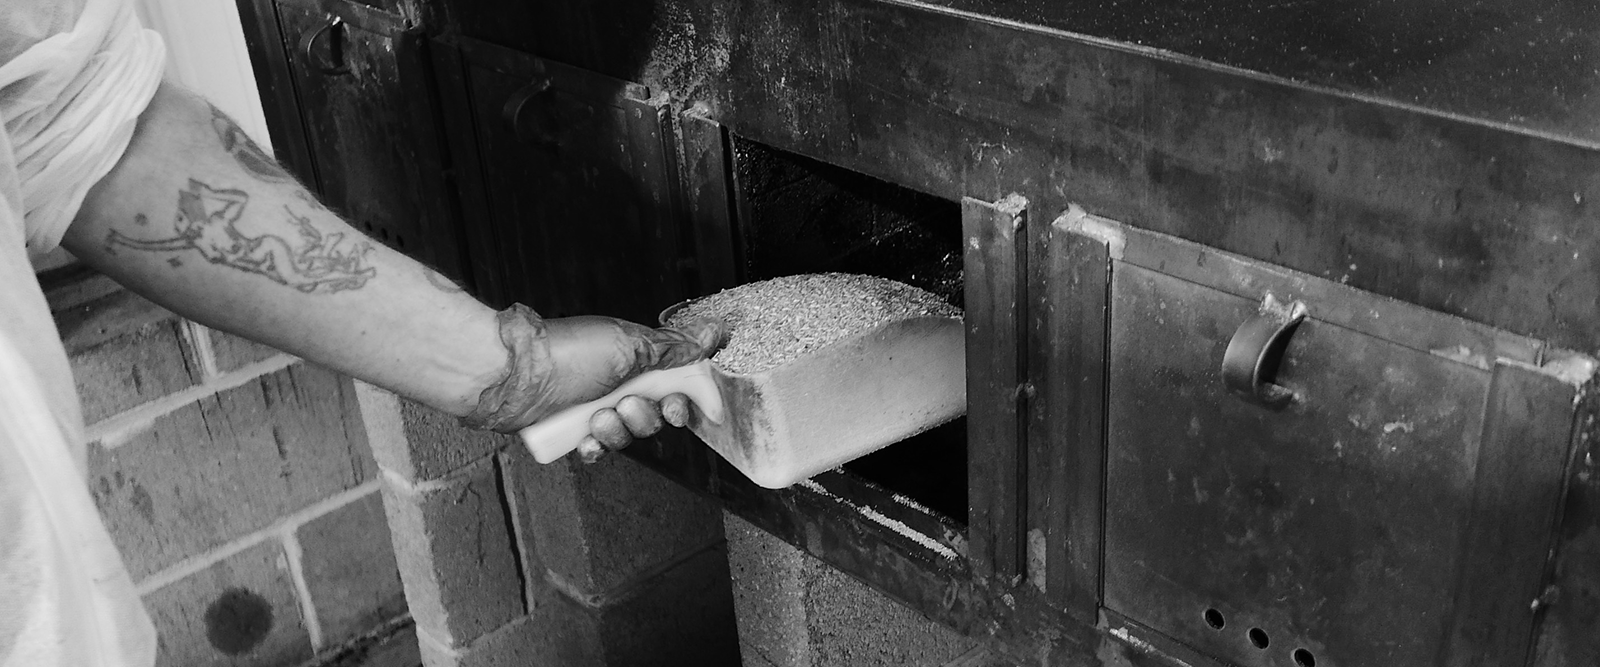 Adding wood chips to the kiln